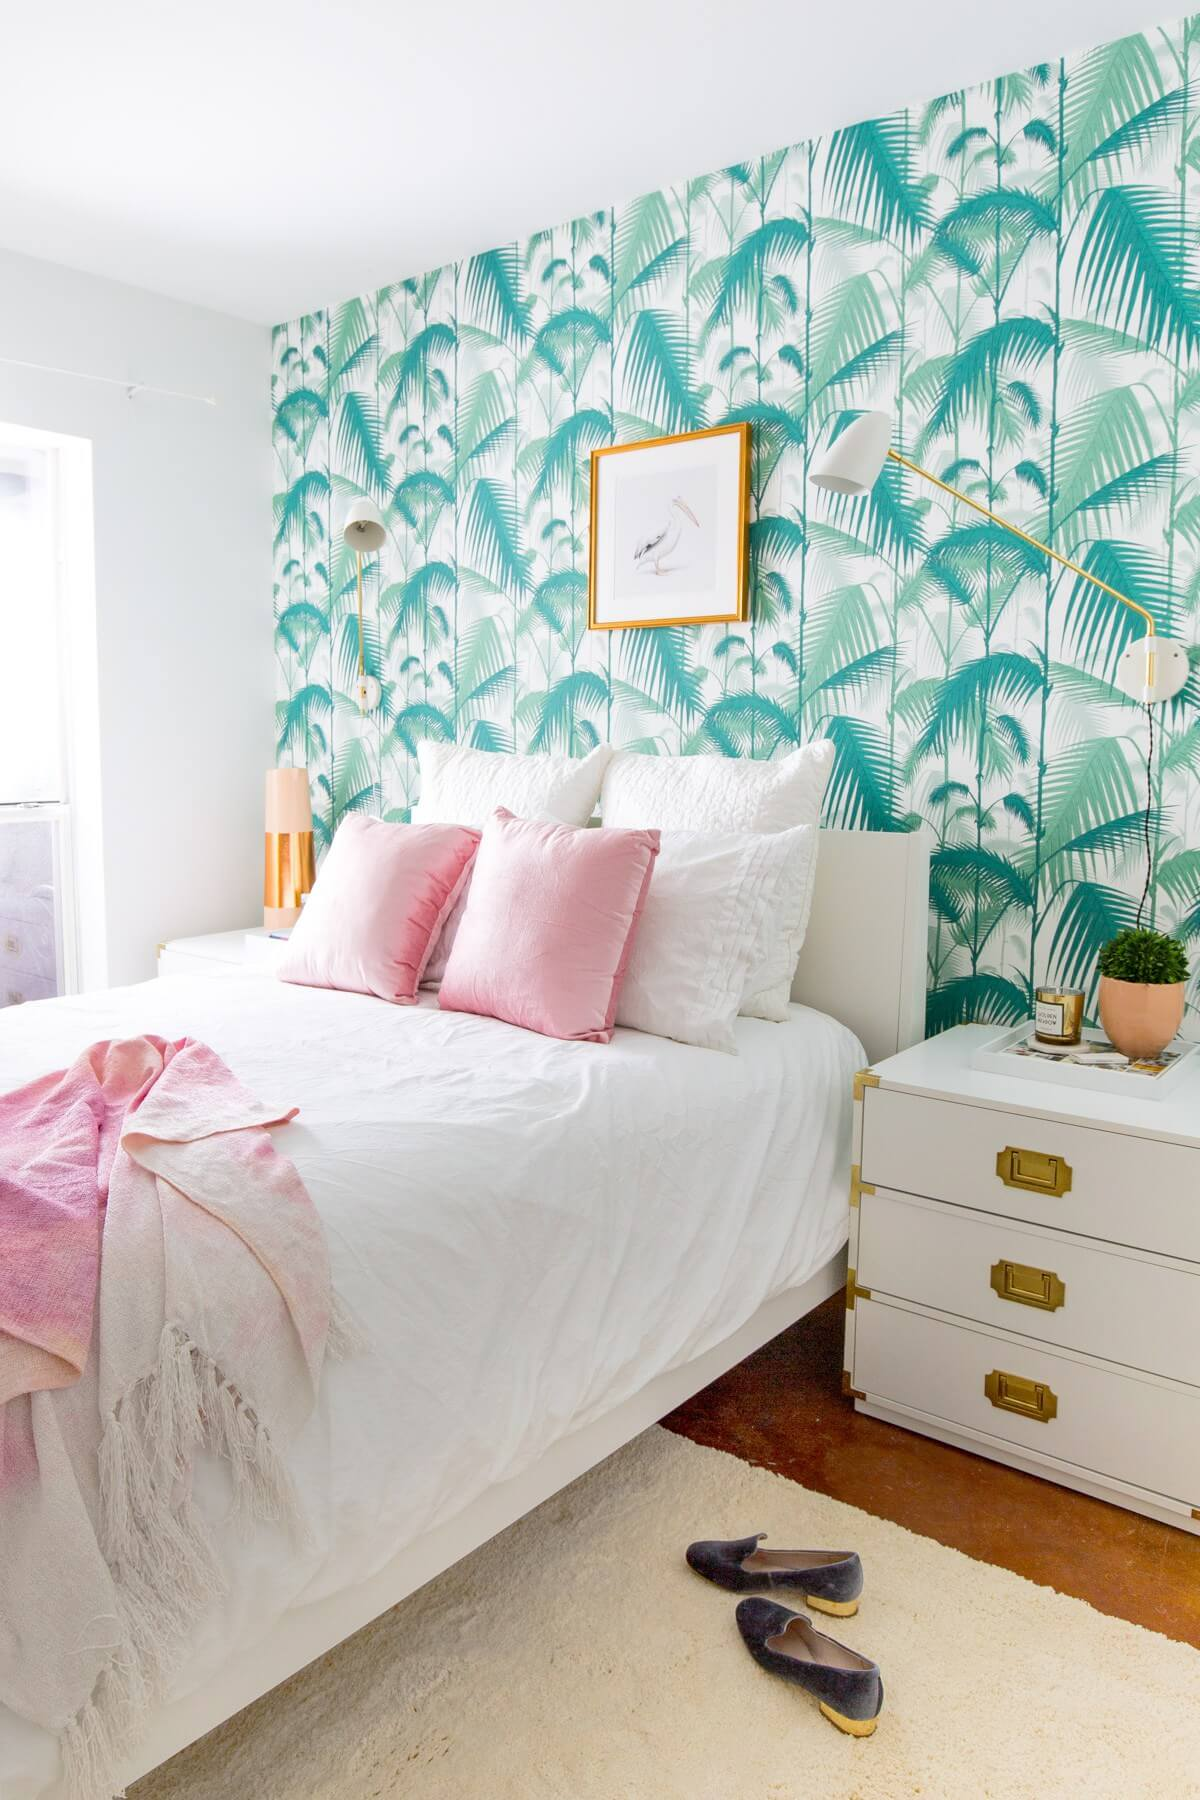 Pink, White, and Turquoise with Palm Wallpaper